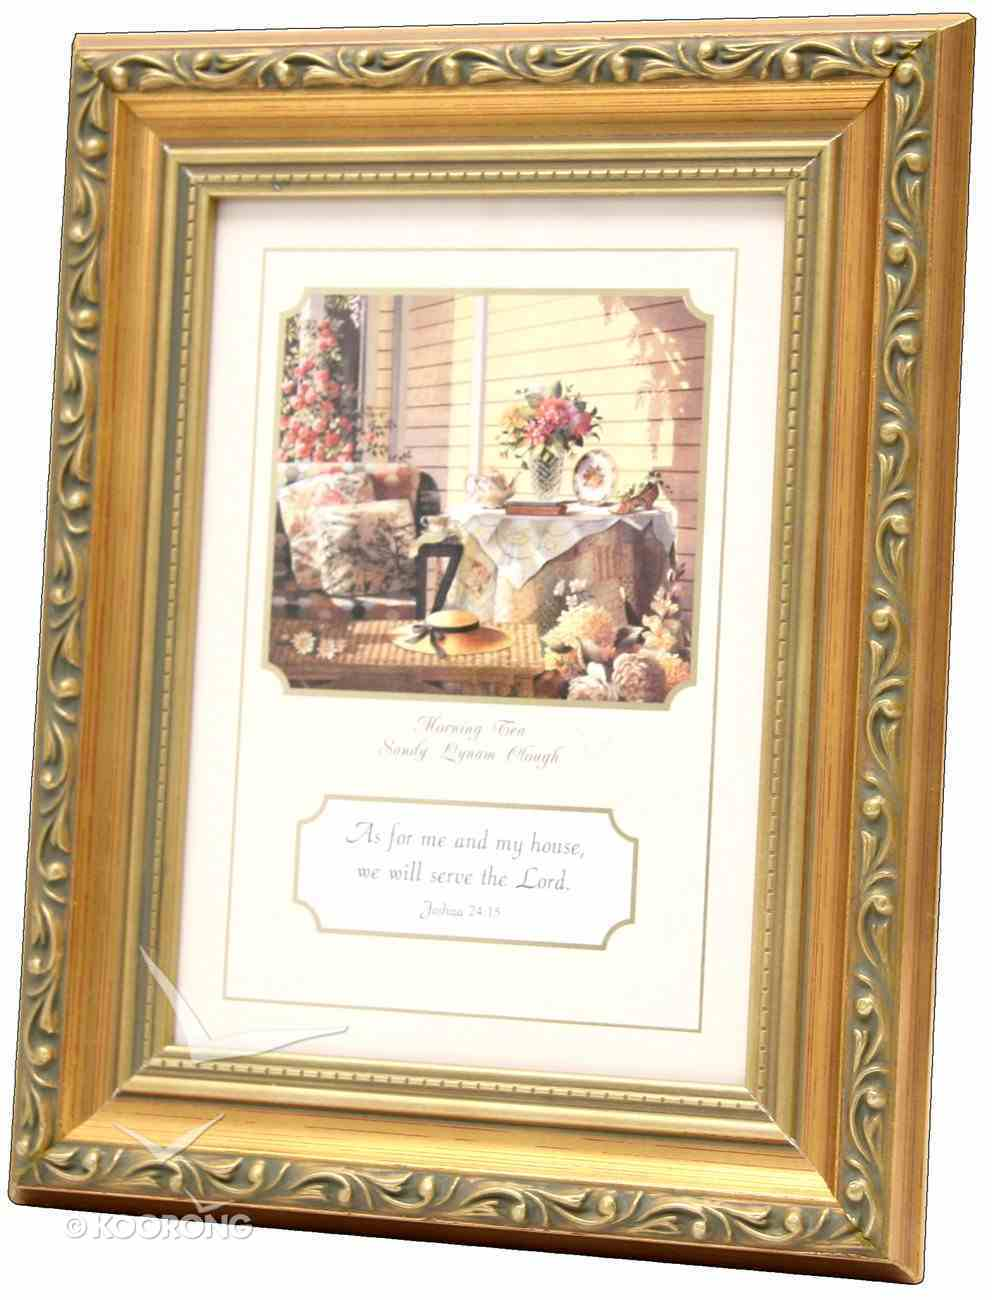 Framed Print With Scripture: Joshua 24:15 (As For Me & My House) Plaque